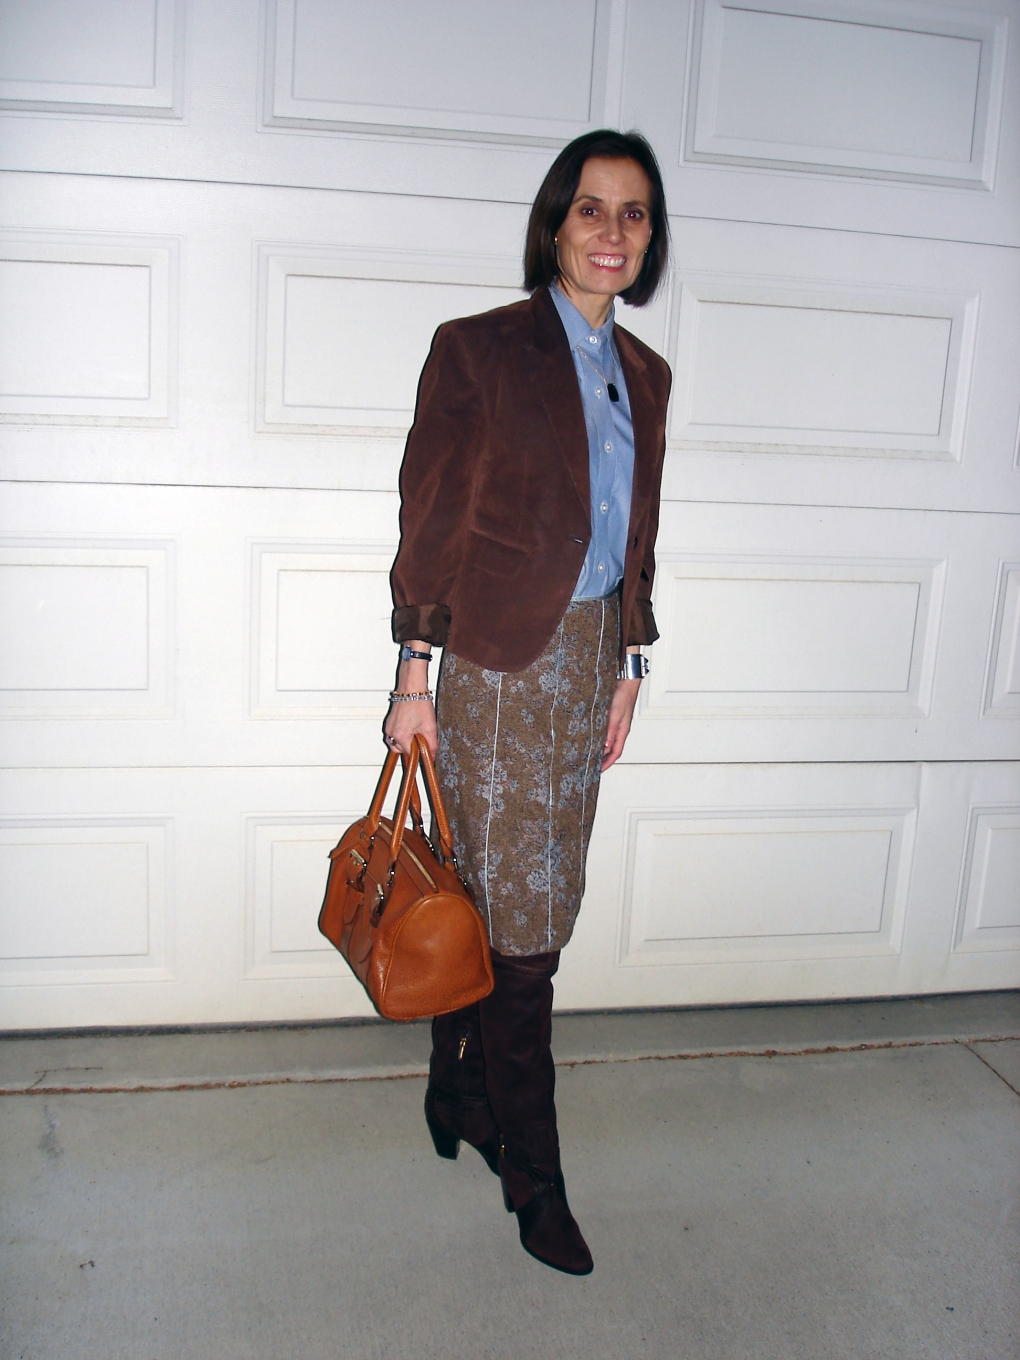 #styleover40 mature woman in a tweed skirt with button-down shirt and suede blazer for a winter office look